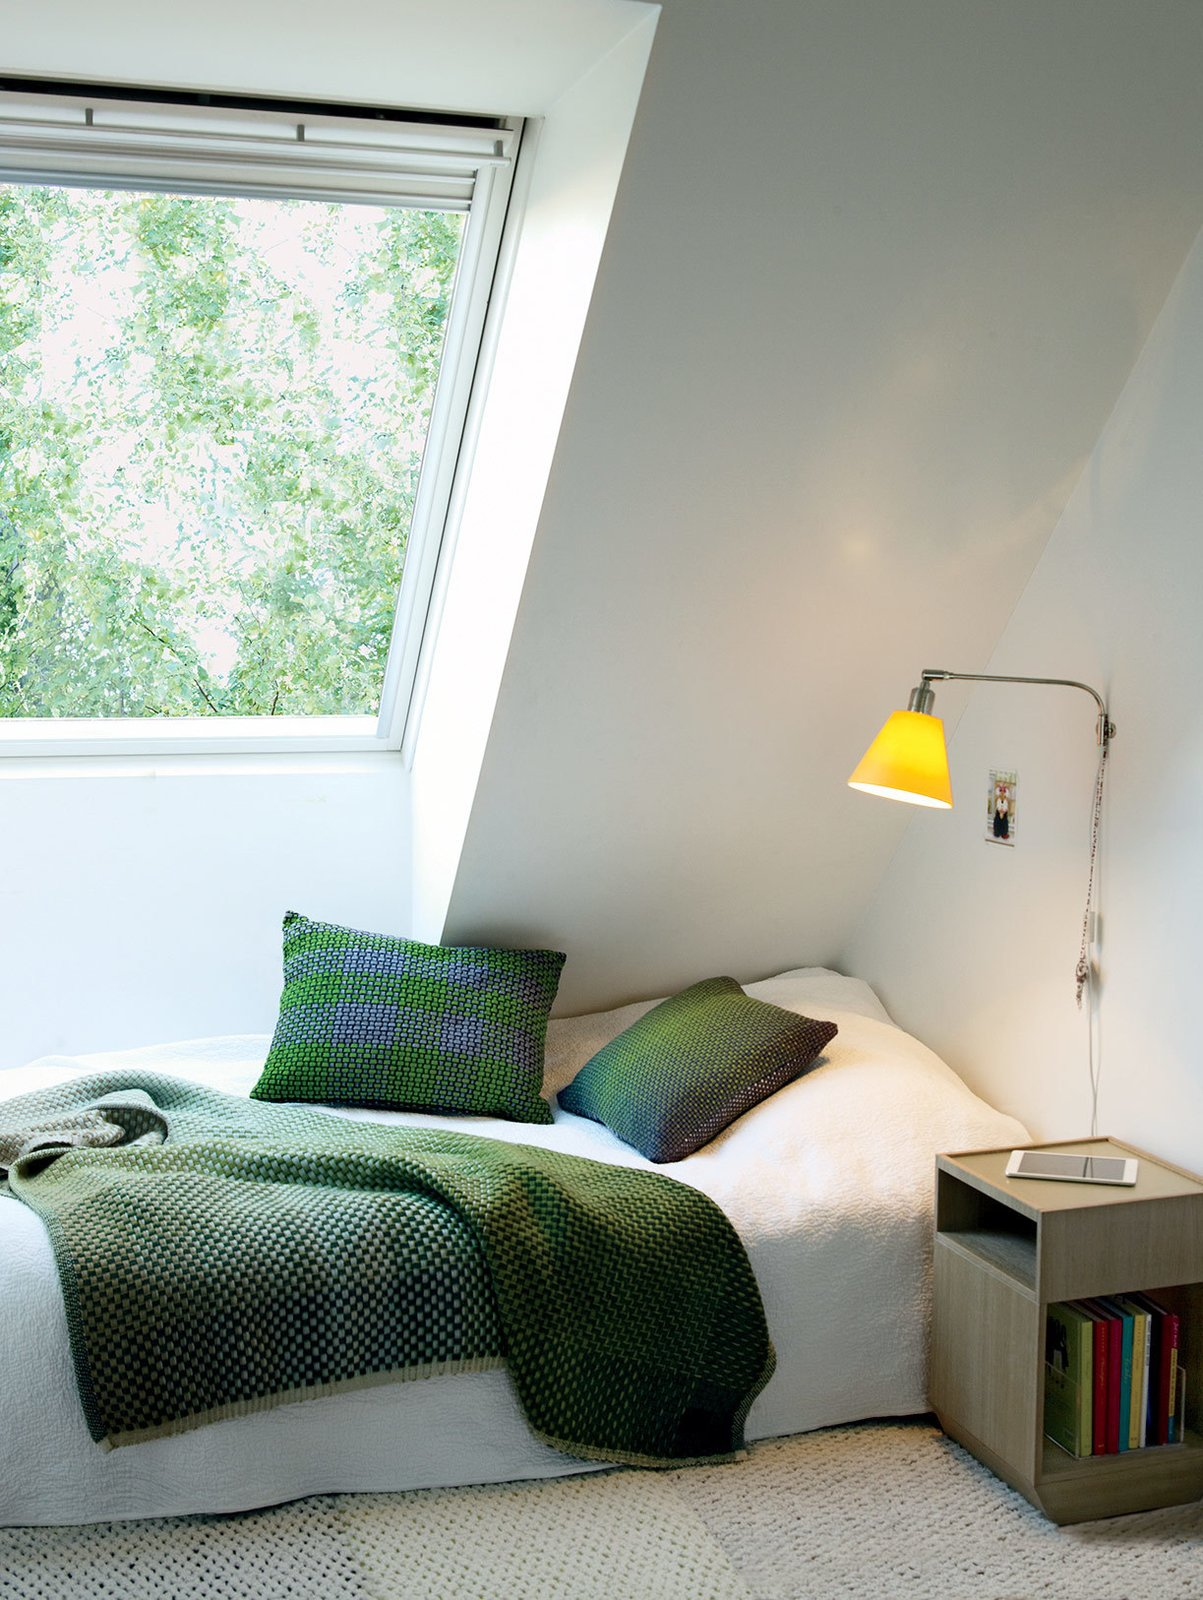 Bedroom and Bed Upstairs, each daughter's bedroom was designed as a sanctuary, with cozy touches like Simon Key Bertman quilts and cushions. The bed and Pile bedside table by Jessica Signell Knutsson sit on top of a Carpet Honeycomb by designer Maria Löw.  Photo 8 of 12 in This Bright Green Prefab in Sweden Looks Just Like a Monopoly House